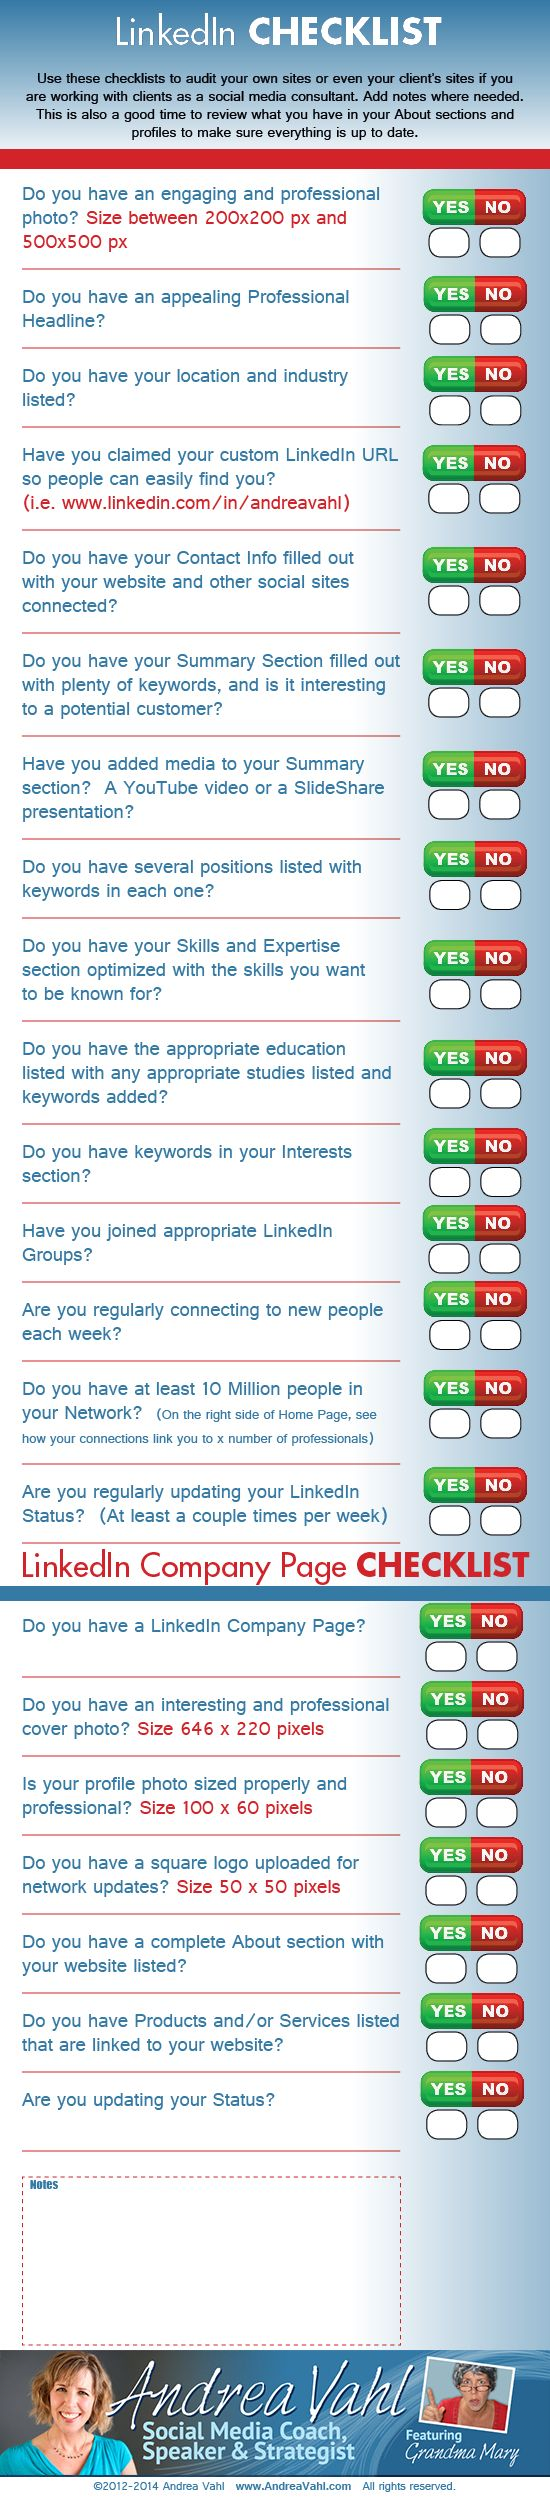 Do you need to make sure you are getting everything right on your LinkedIn profile or company page? Use this checklist to audit your own LinkedIn presence or that of your client.